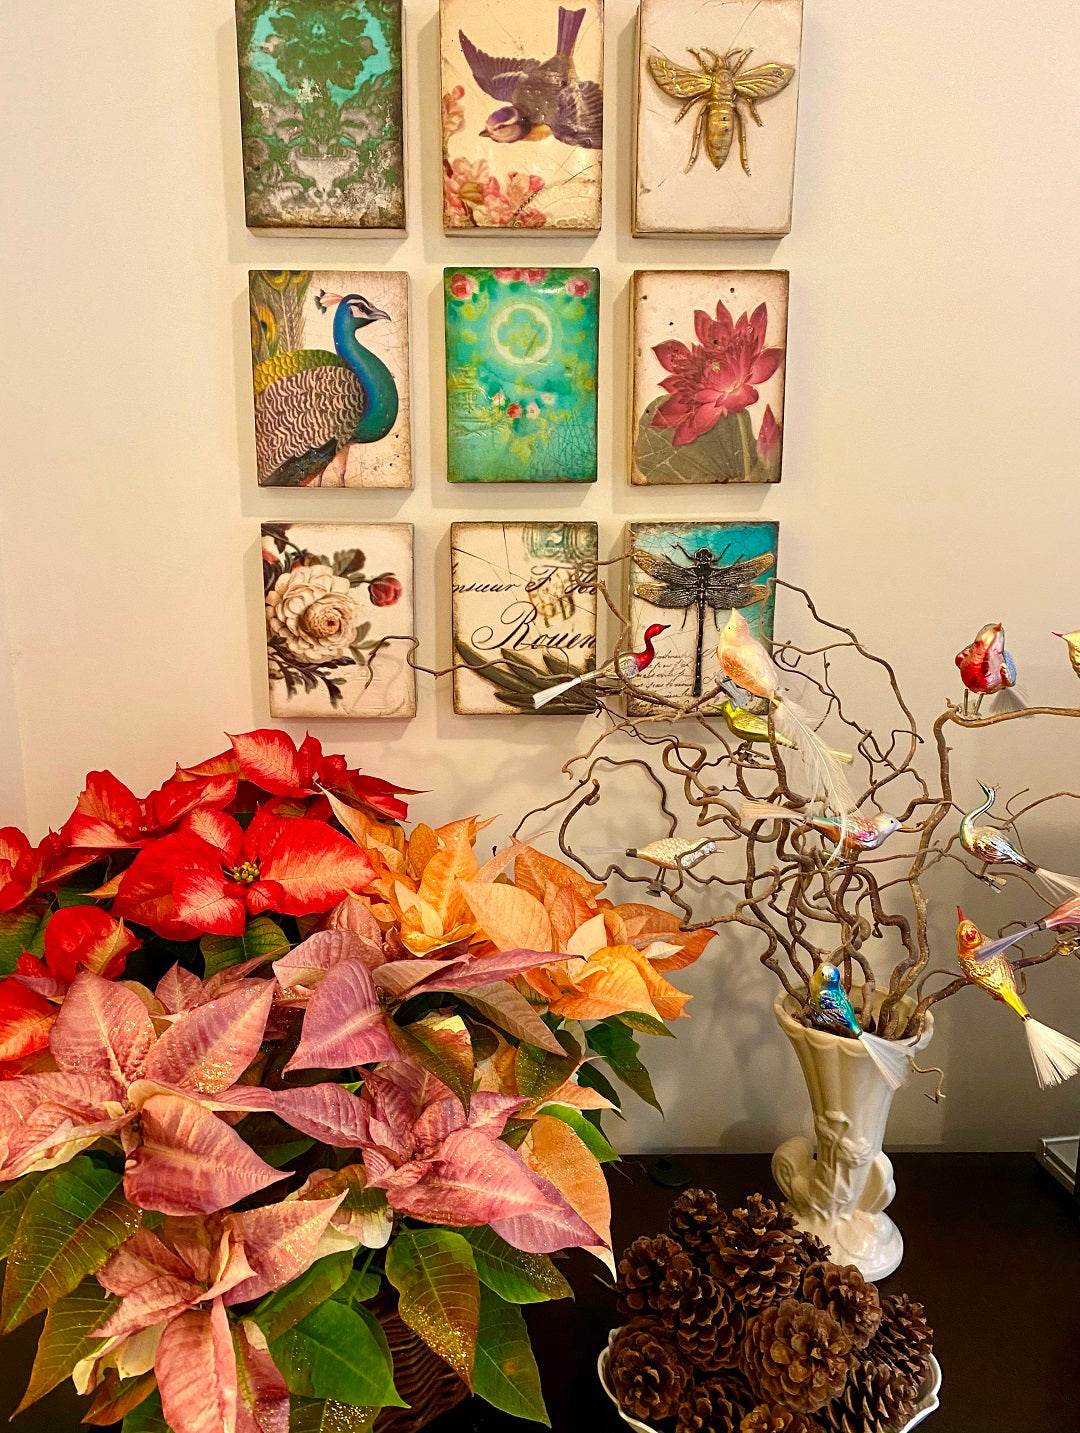 Sid Dicken's Wall tiles with a Poinsettia basket and vintage ornaments